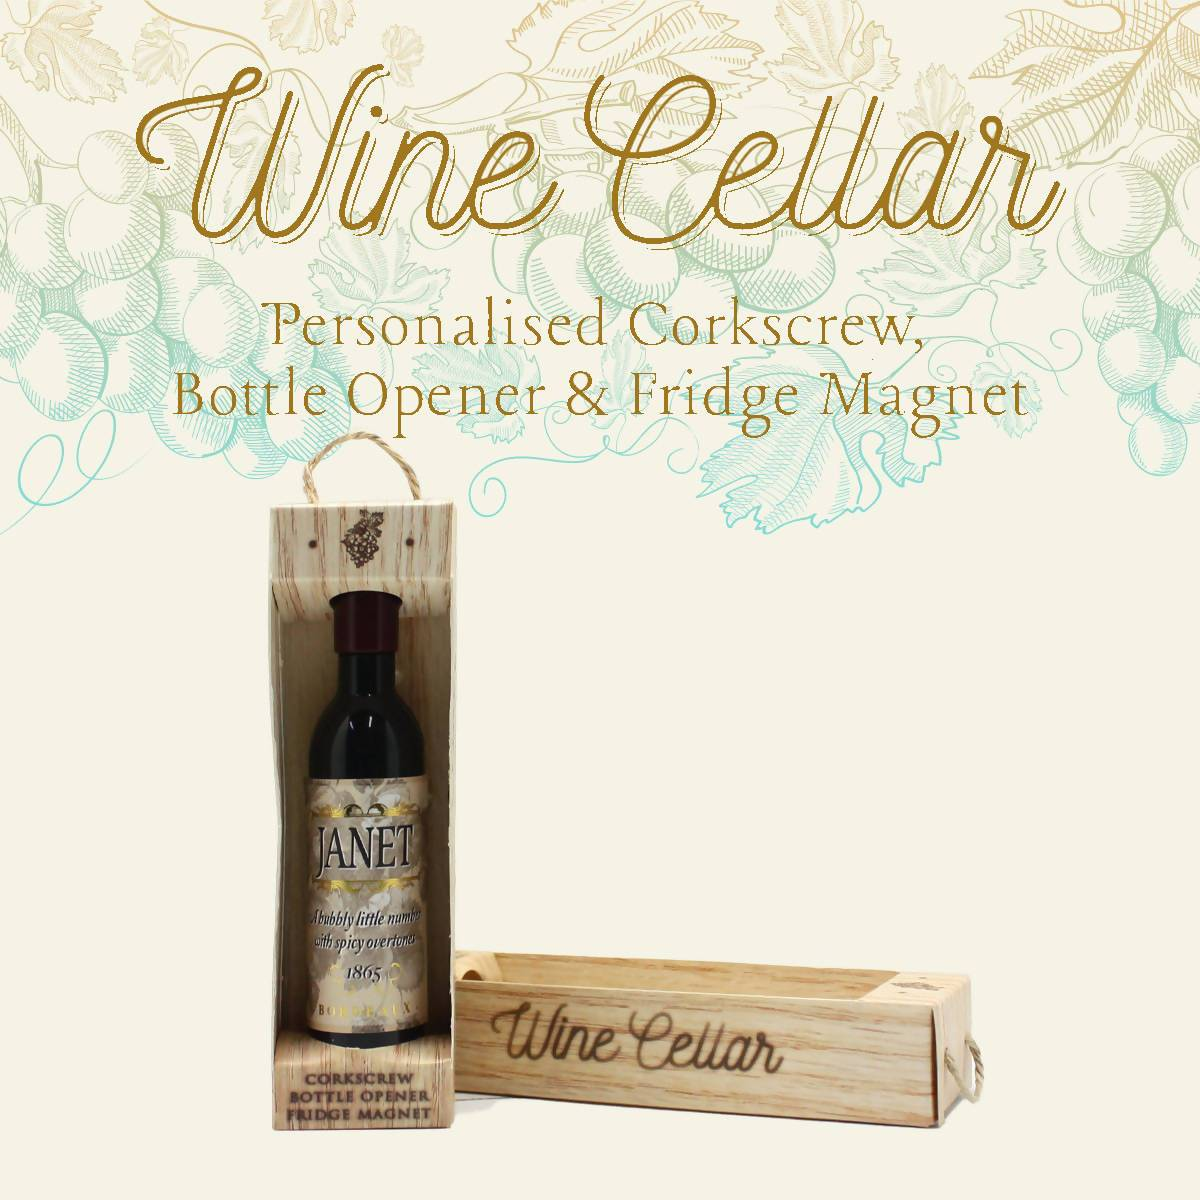 WINE CELLAR - For Wine Lover : Janet - Bottle Openers - La Belle Collection - Naiise